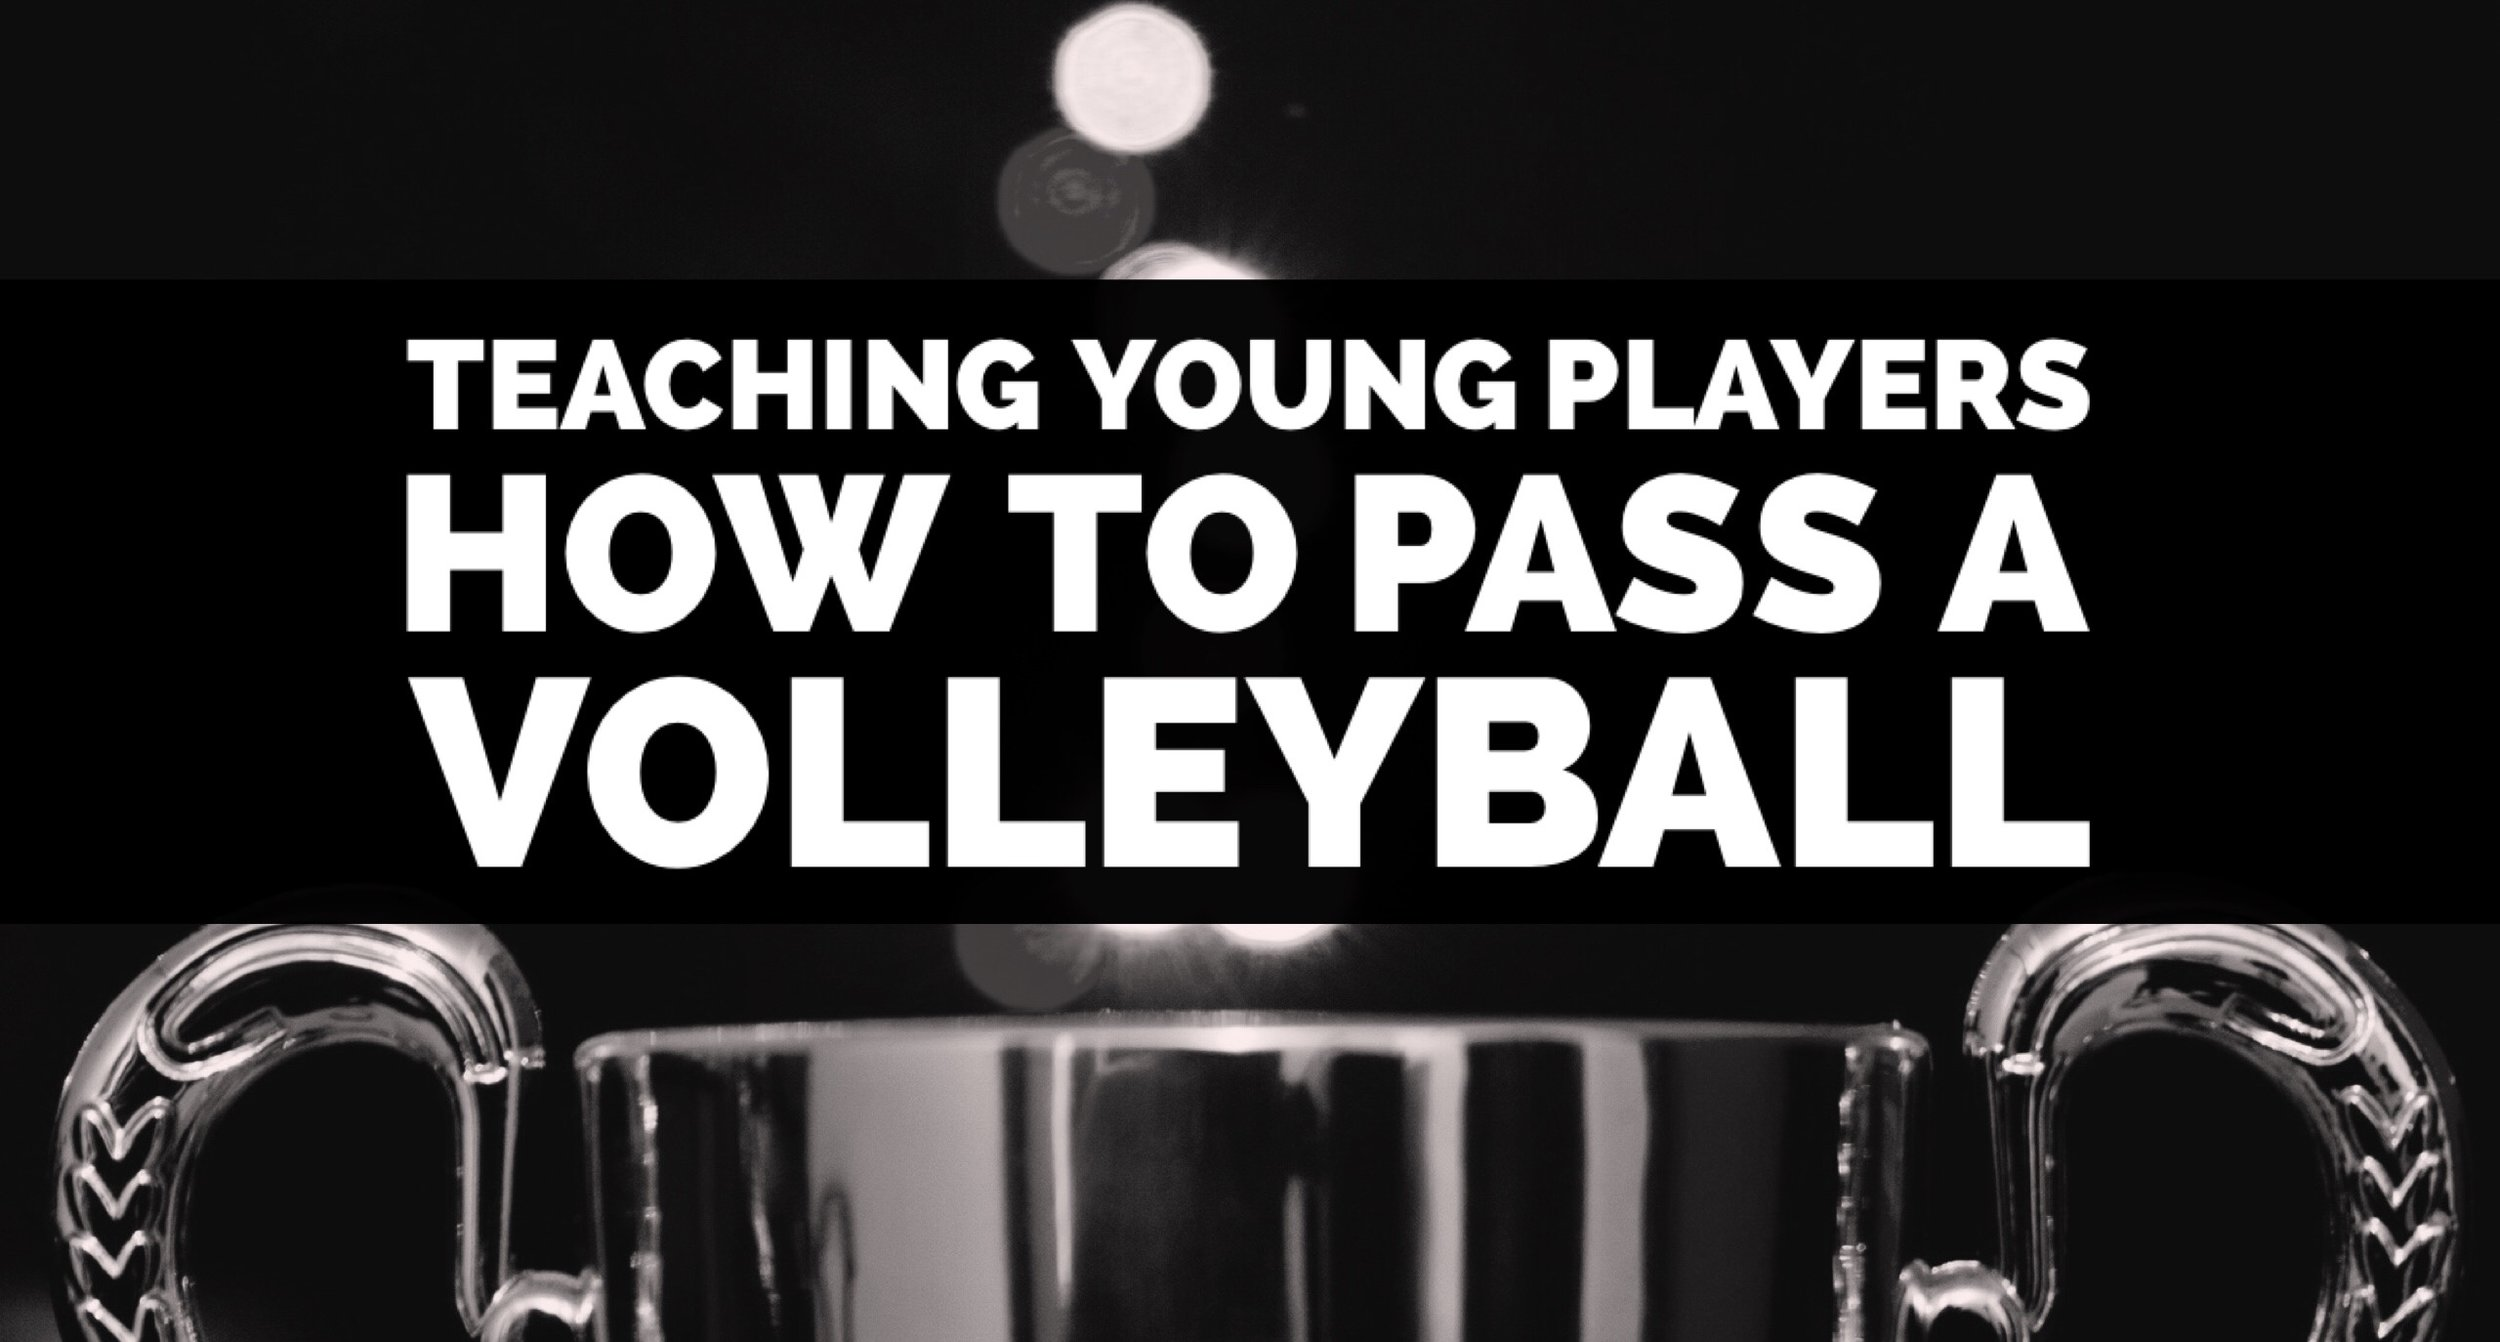 Teaching Young Players How to Pass a Volleyball